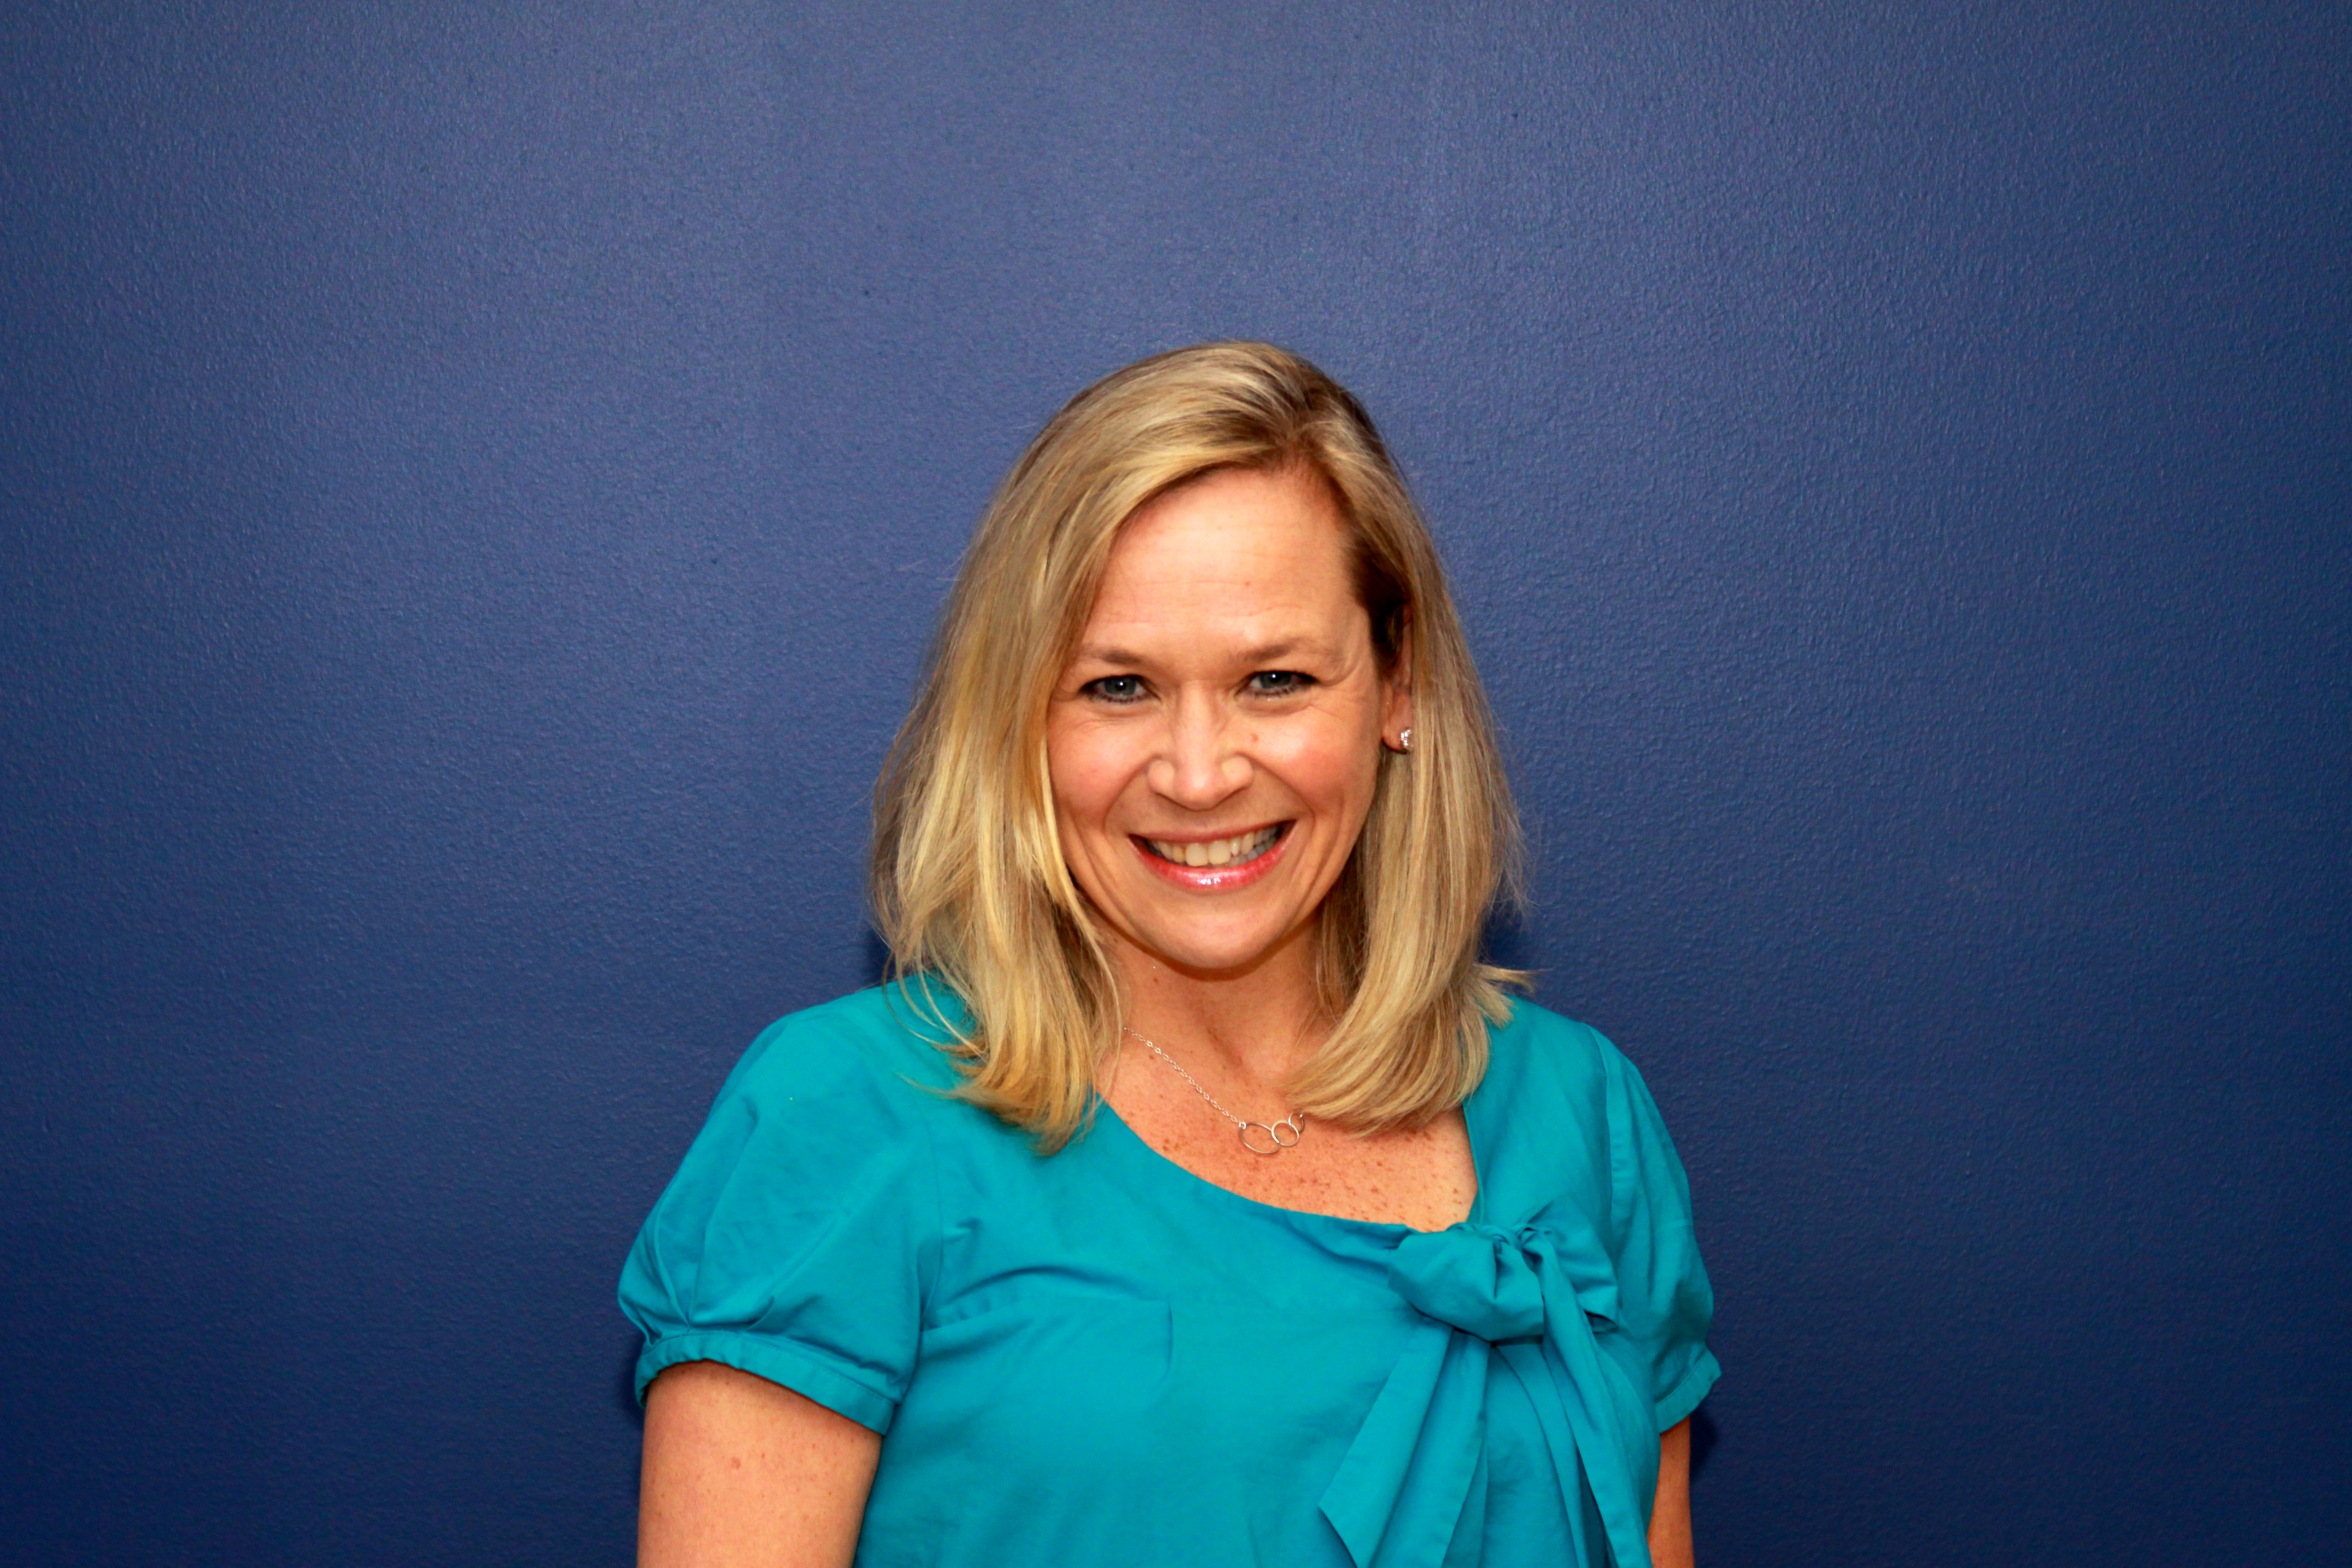 A smiling woman in a light blue top against a dark blue background.